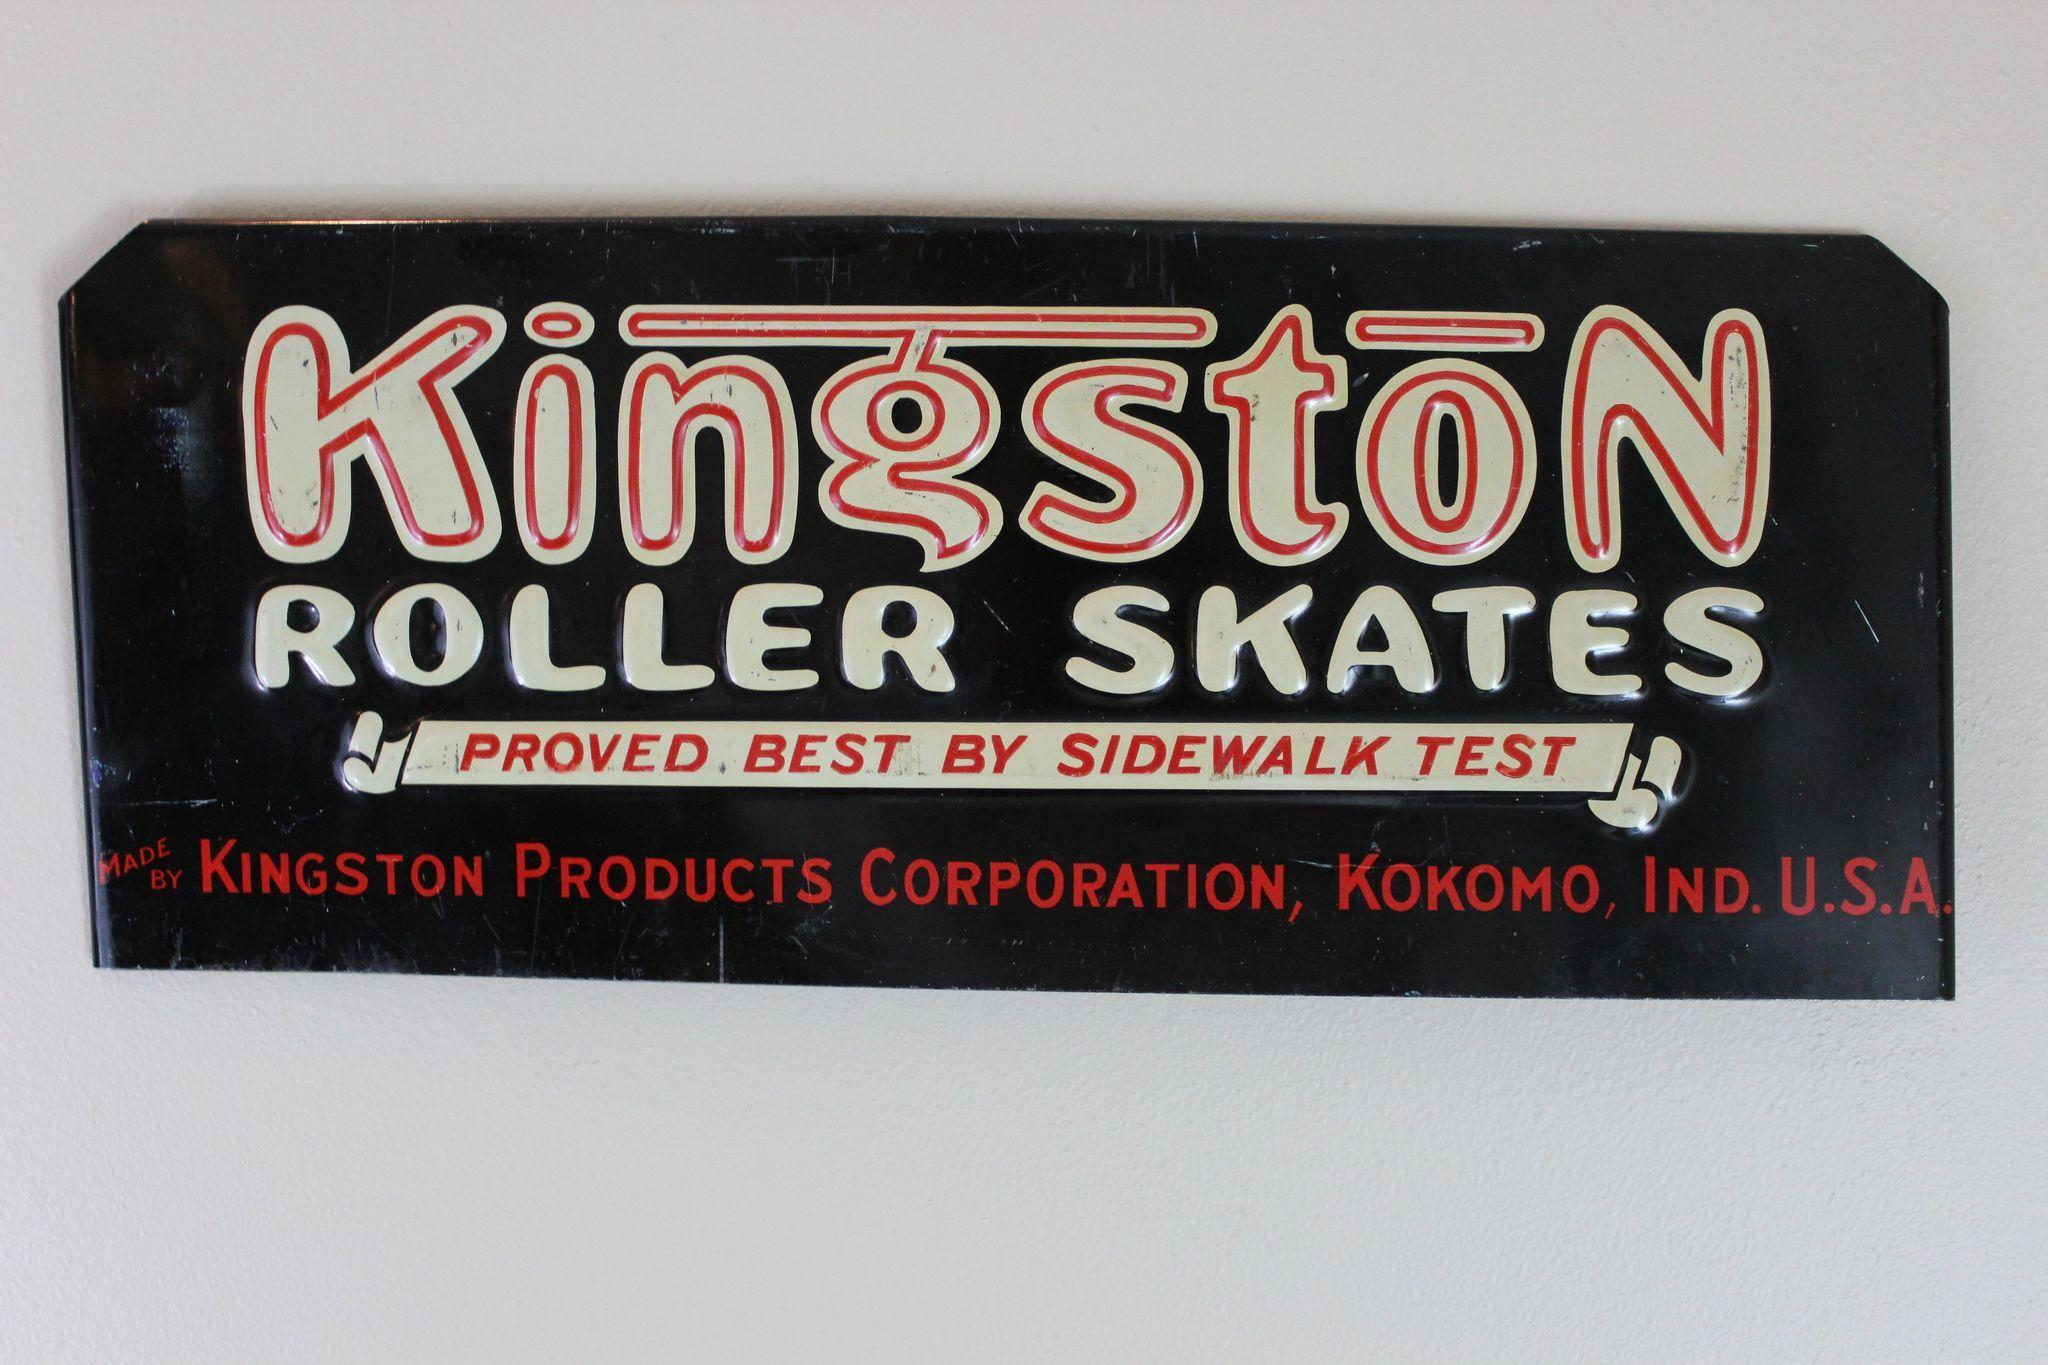 Roller skates kingston - Roll Over Large Image To Magnify Click Large Image To Zoom